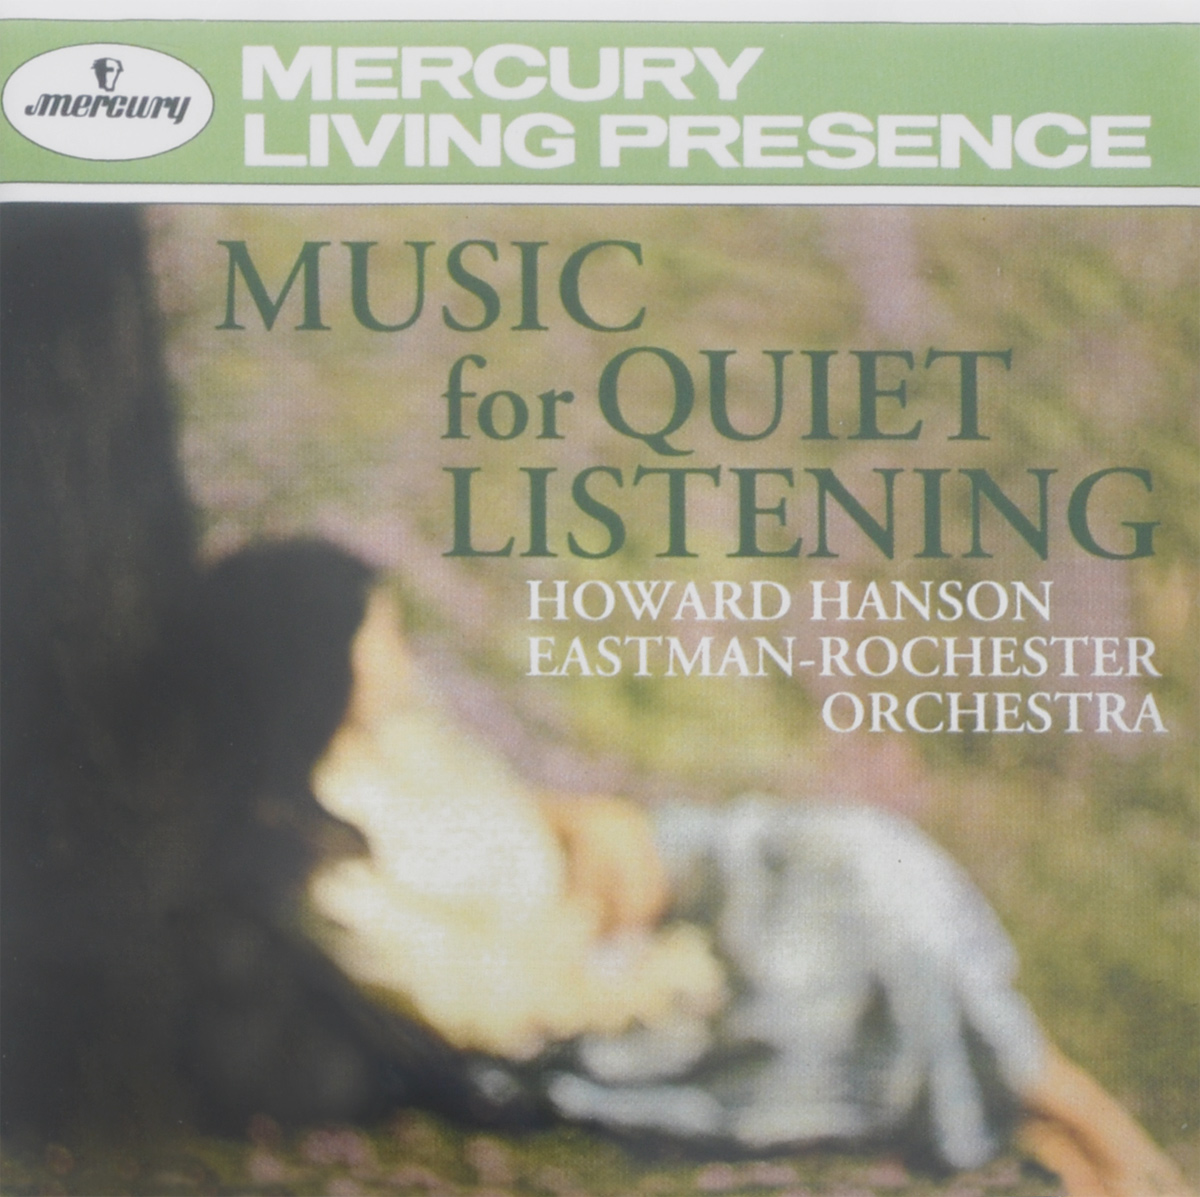 Ховард Хэнсон,Eastman-Rochester Orchestra Howard Hanson. Music For Quiet Listening корм для карликовых хомяков versele laga mini hamster nature 400 г